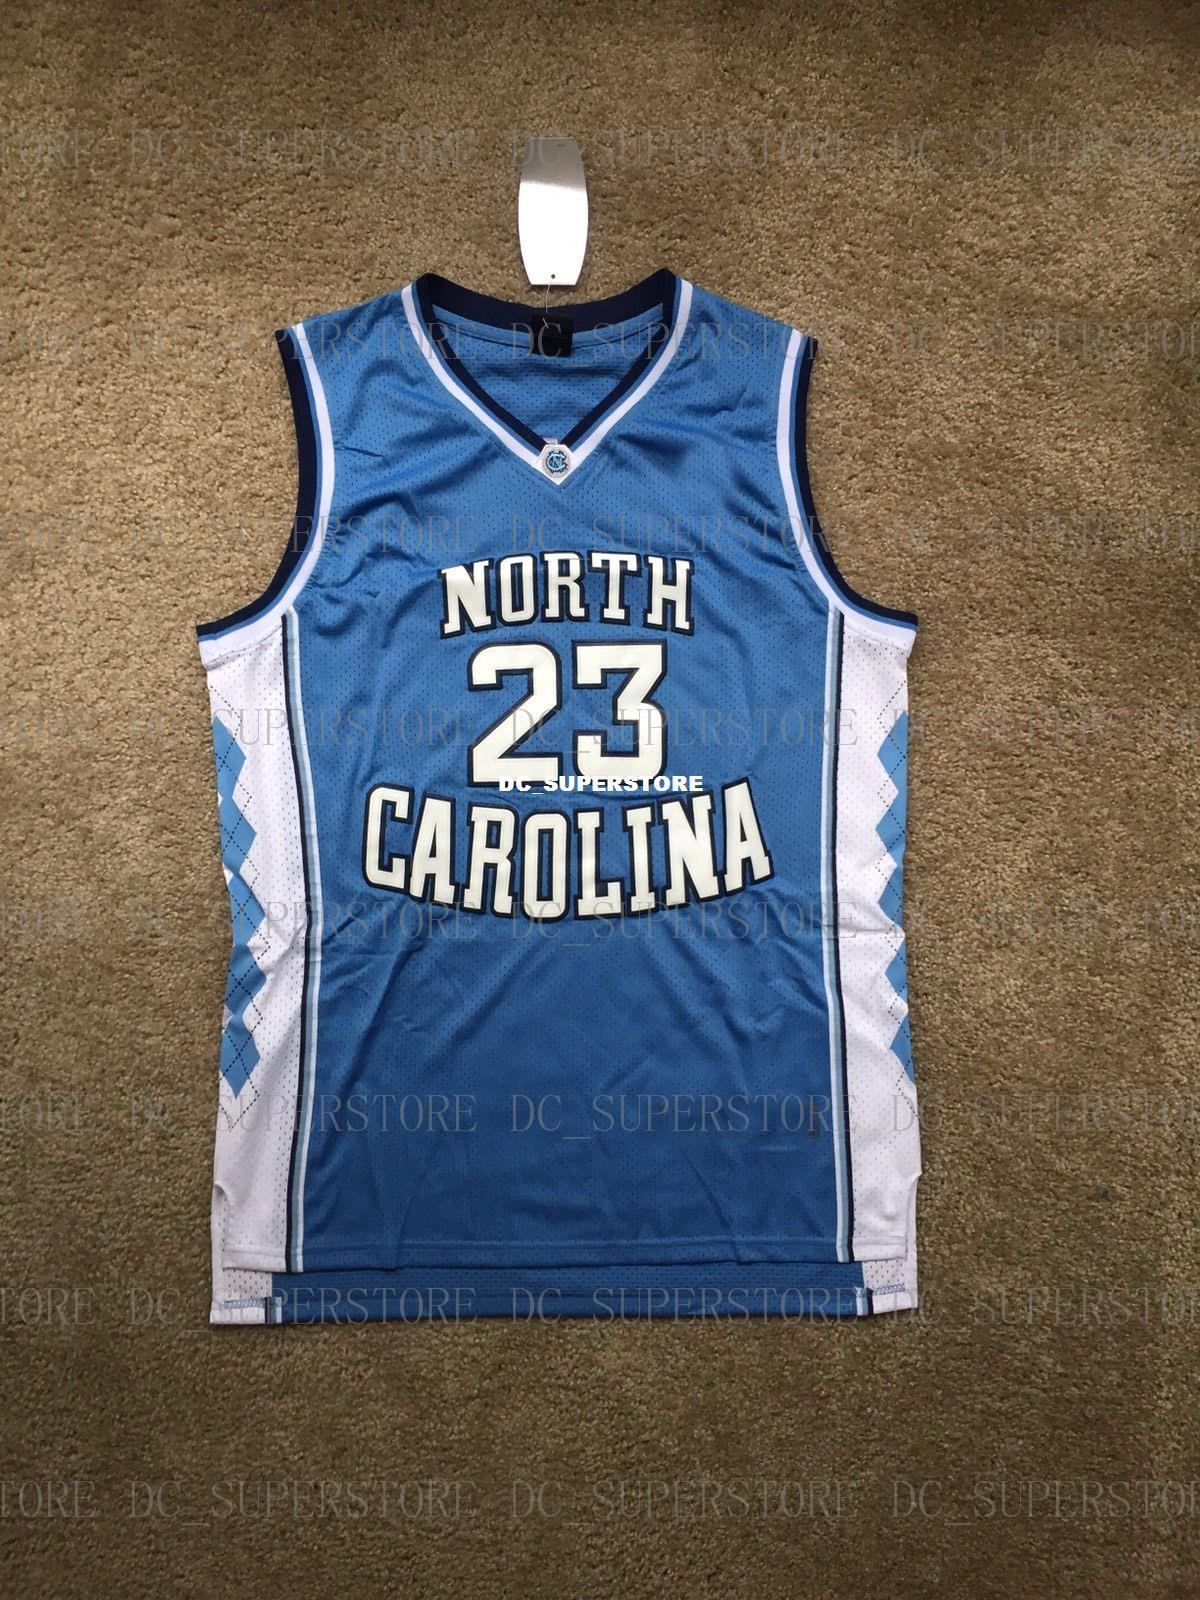 0bc22d4d26aa 2019 Cheap Custom Michael North Carolina Tar Heels NCAA Basketball Jersey  Stitch Customize Any Number Name MEN WOMEN YOUTH XS 5XL From Dc superstore